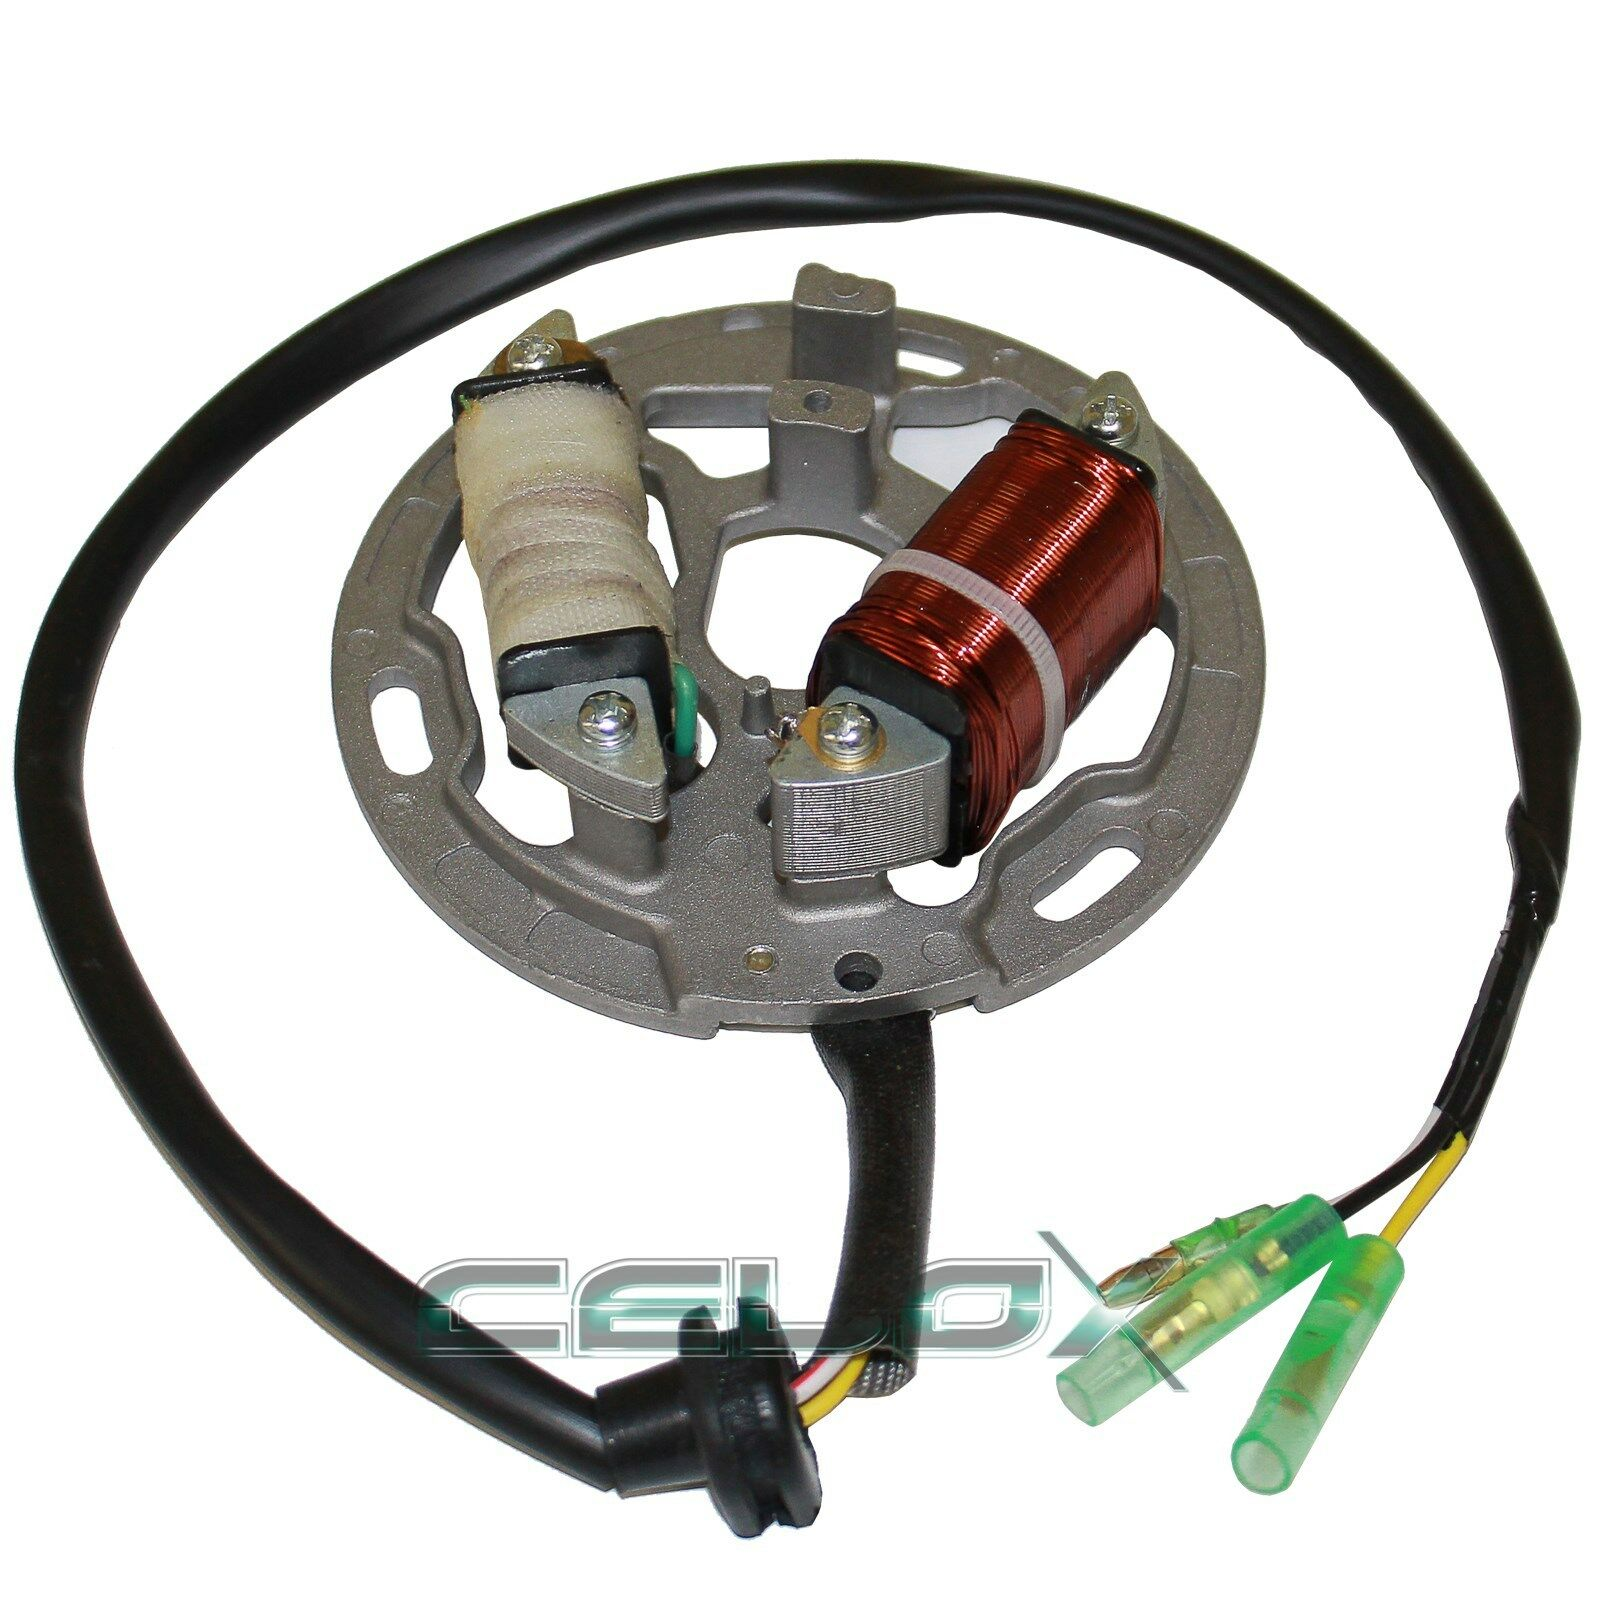 Stator Fits Kawasaki Kdx200 Kdx 200 1989 1990 1991 1992 1993 1994 Wiring 1 Of 1only 0 Available